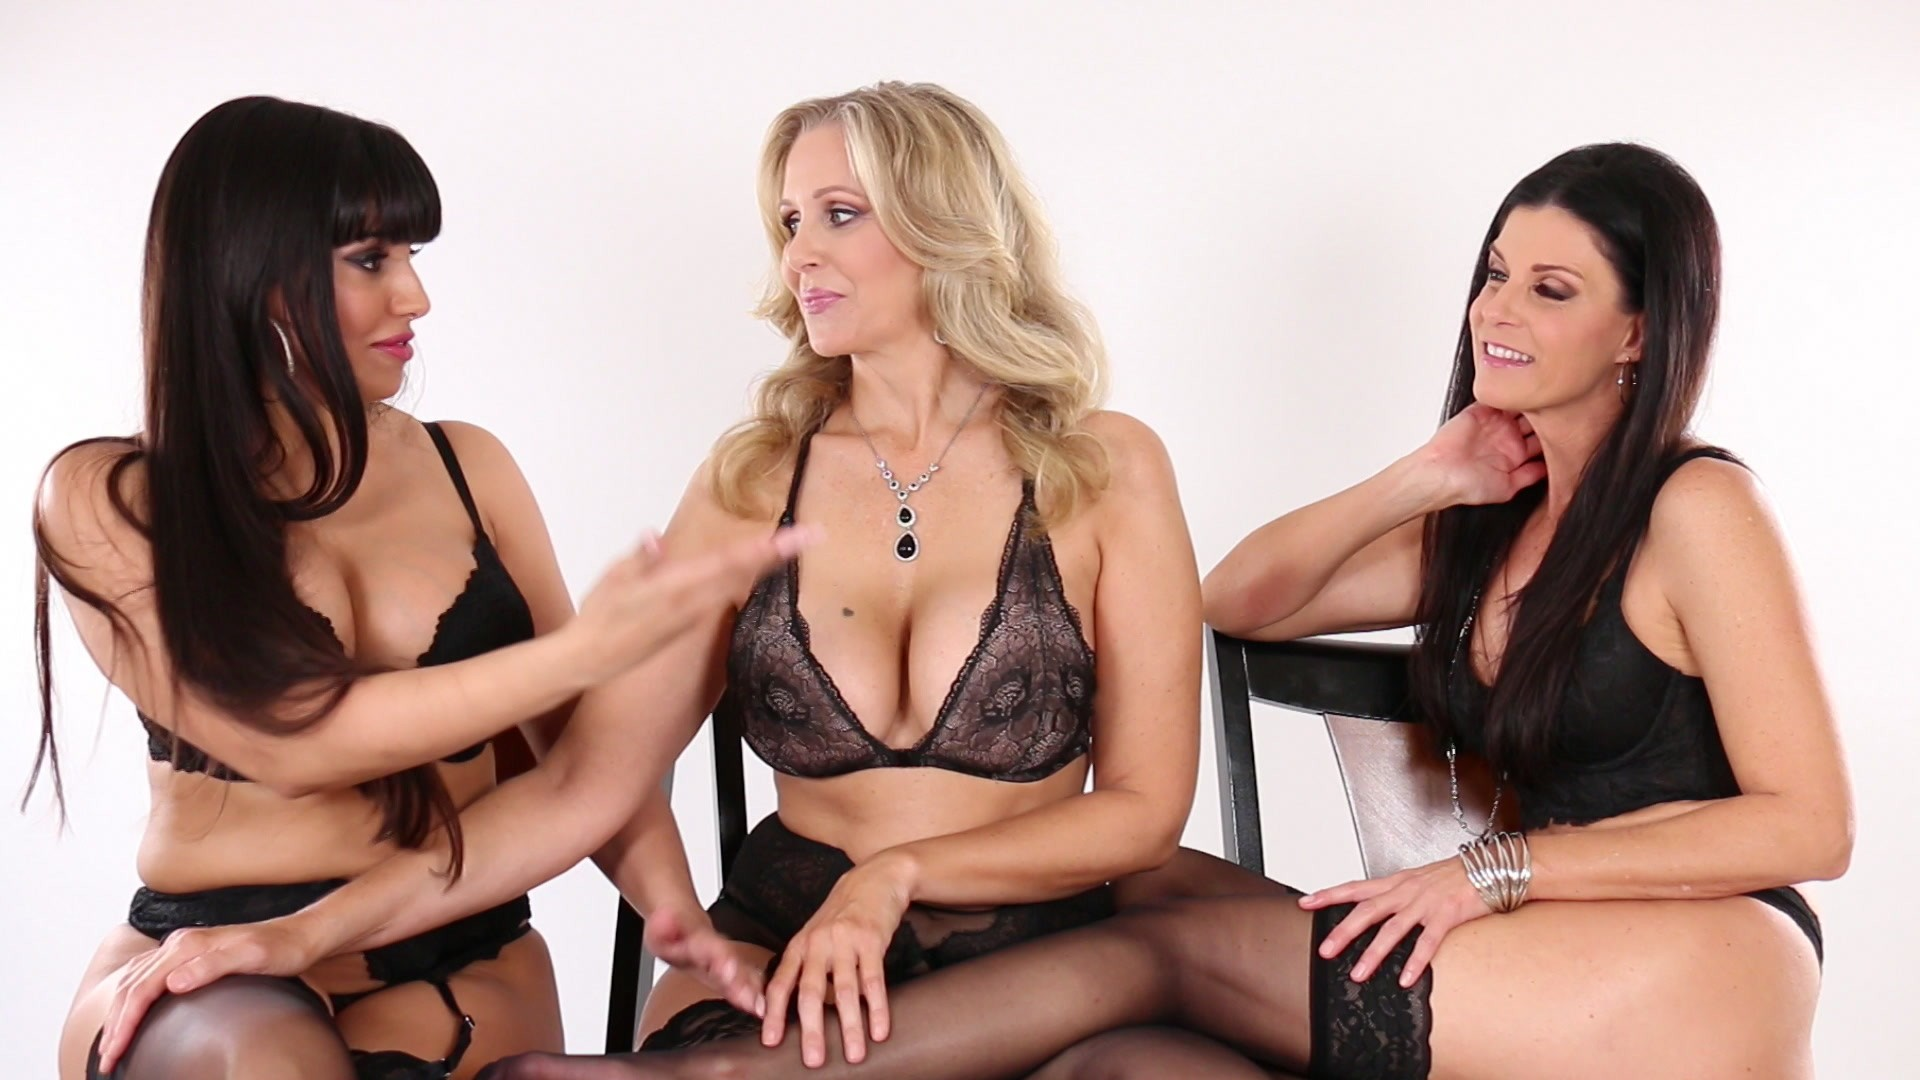 Scene with Julia Ann, India Summer and Mercedes Carrera - image 1 out of 20